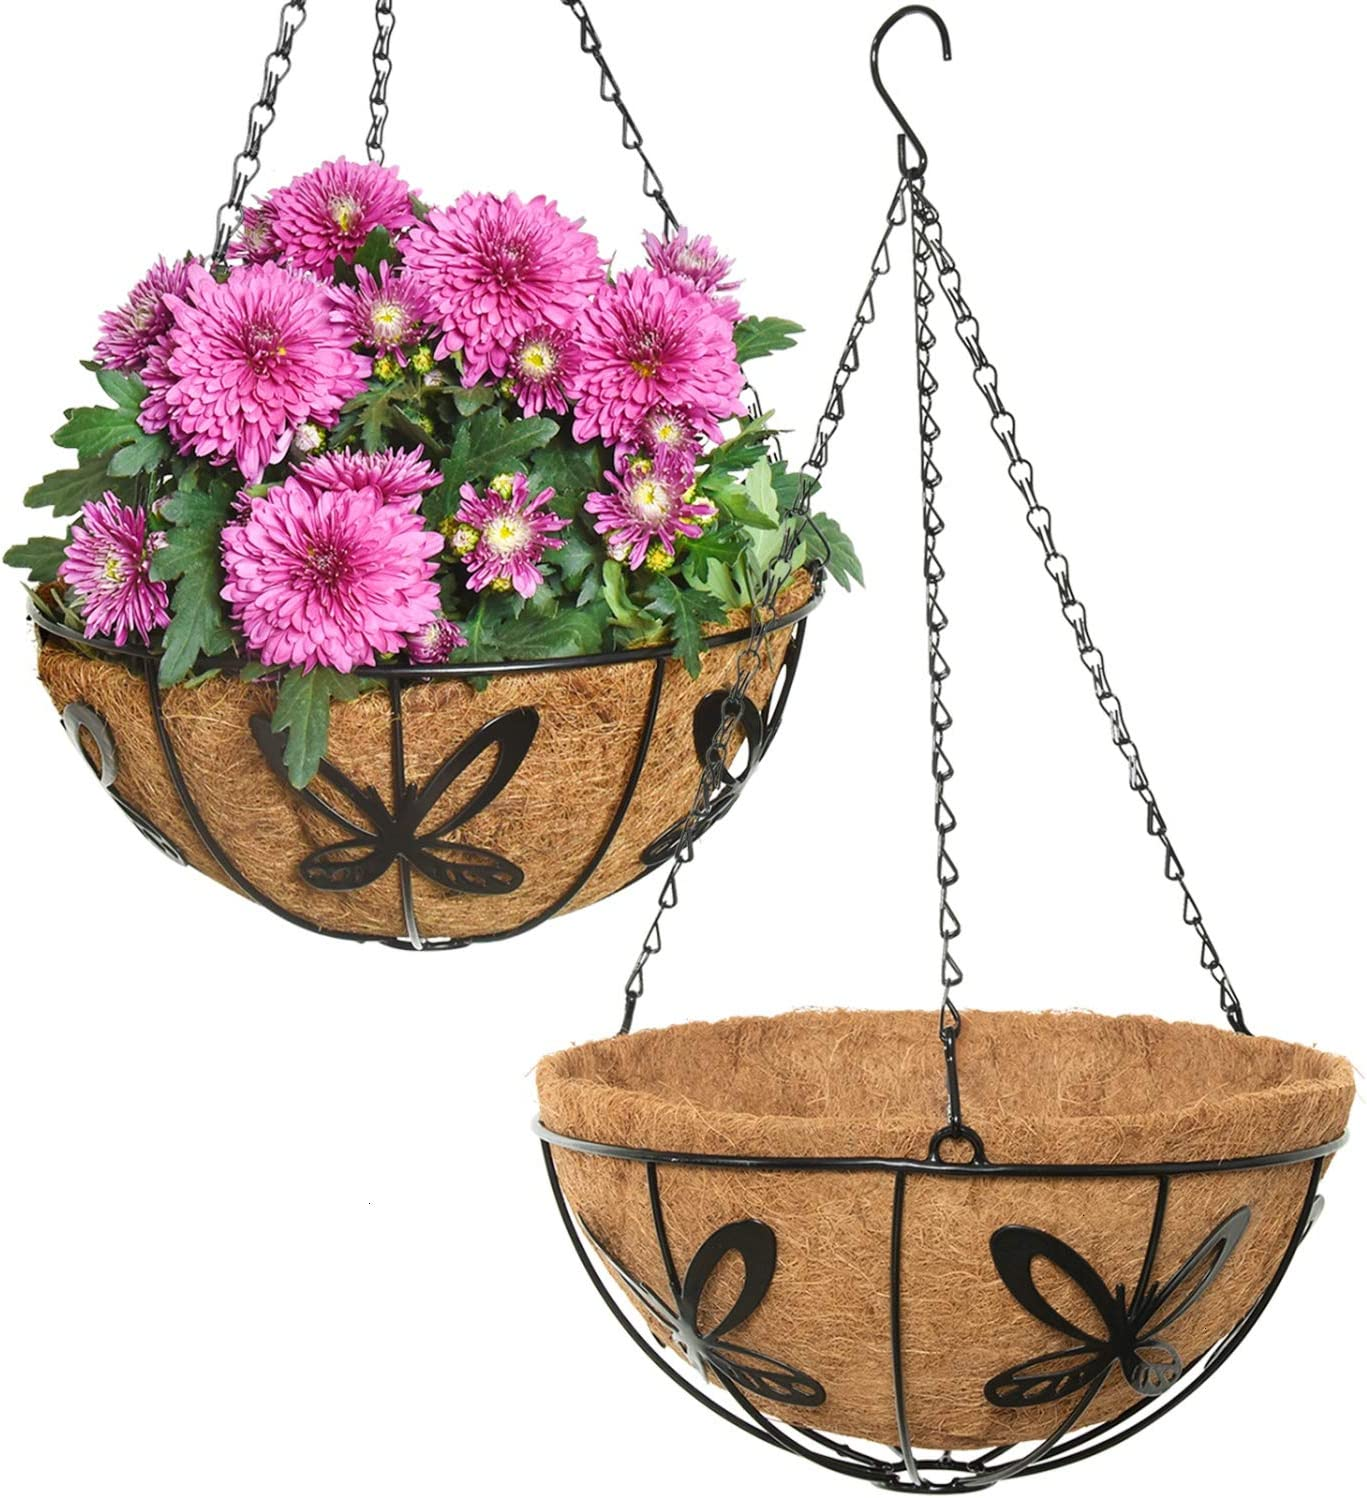 Vumdua Metal Hanging Planter Basket for Indoor Outdoor, 2 Pack 12 Inch Round Wire Plant Holder with Hanging Chain - Flower Pots with Coconut Coir Liner Decor for Home, Fence, Porch, Patio, Deck